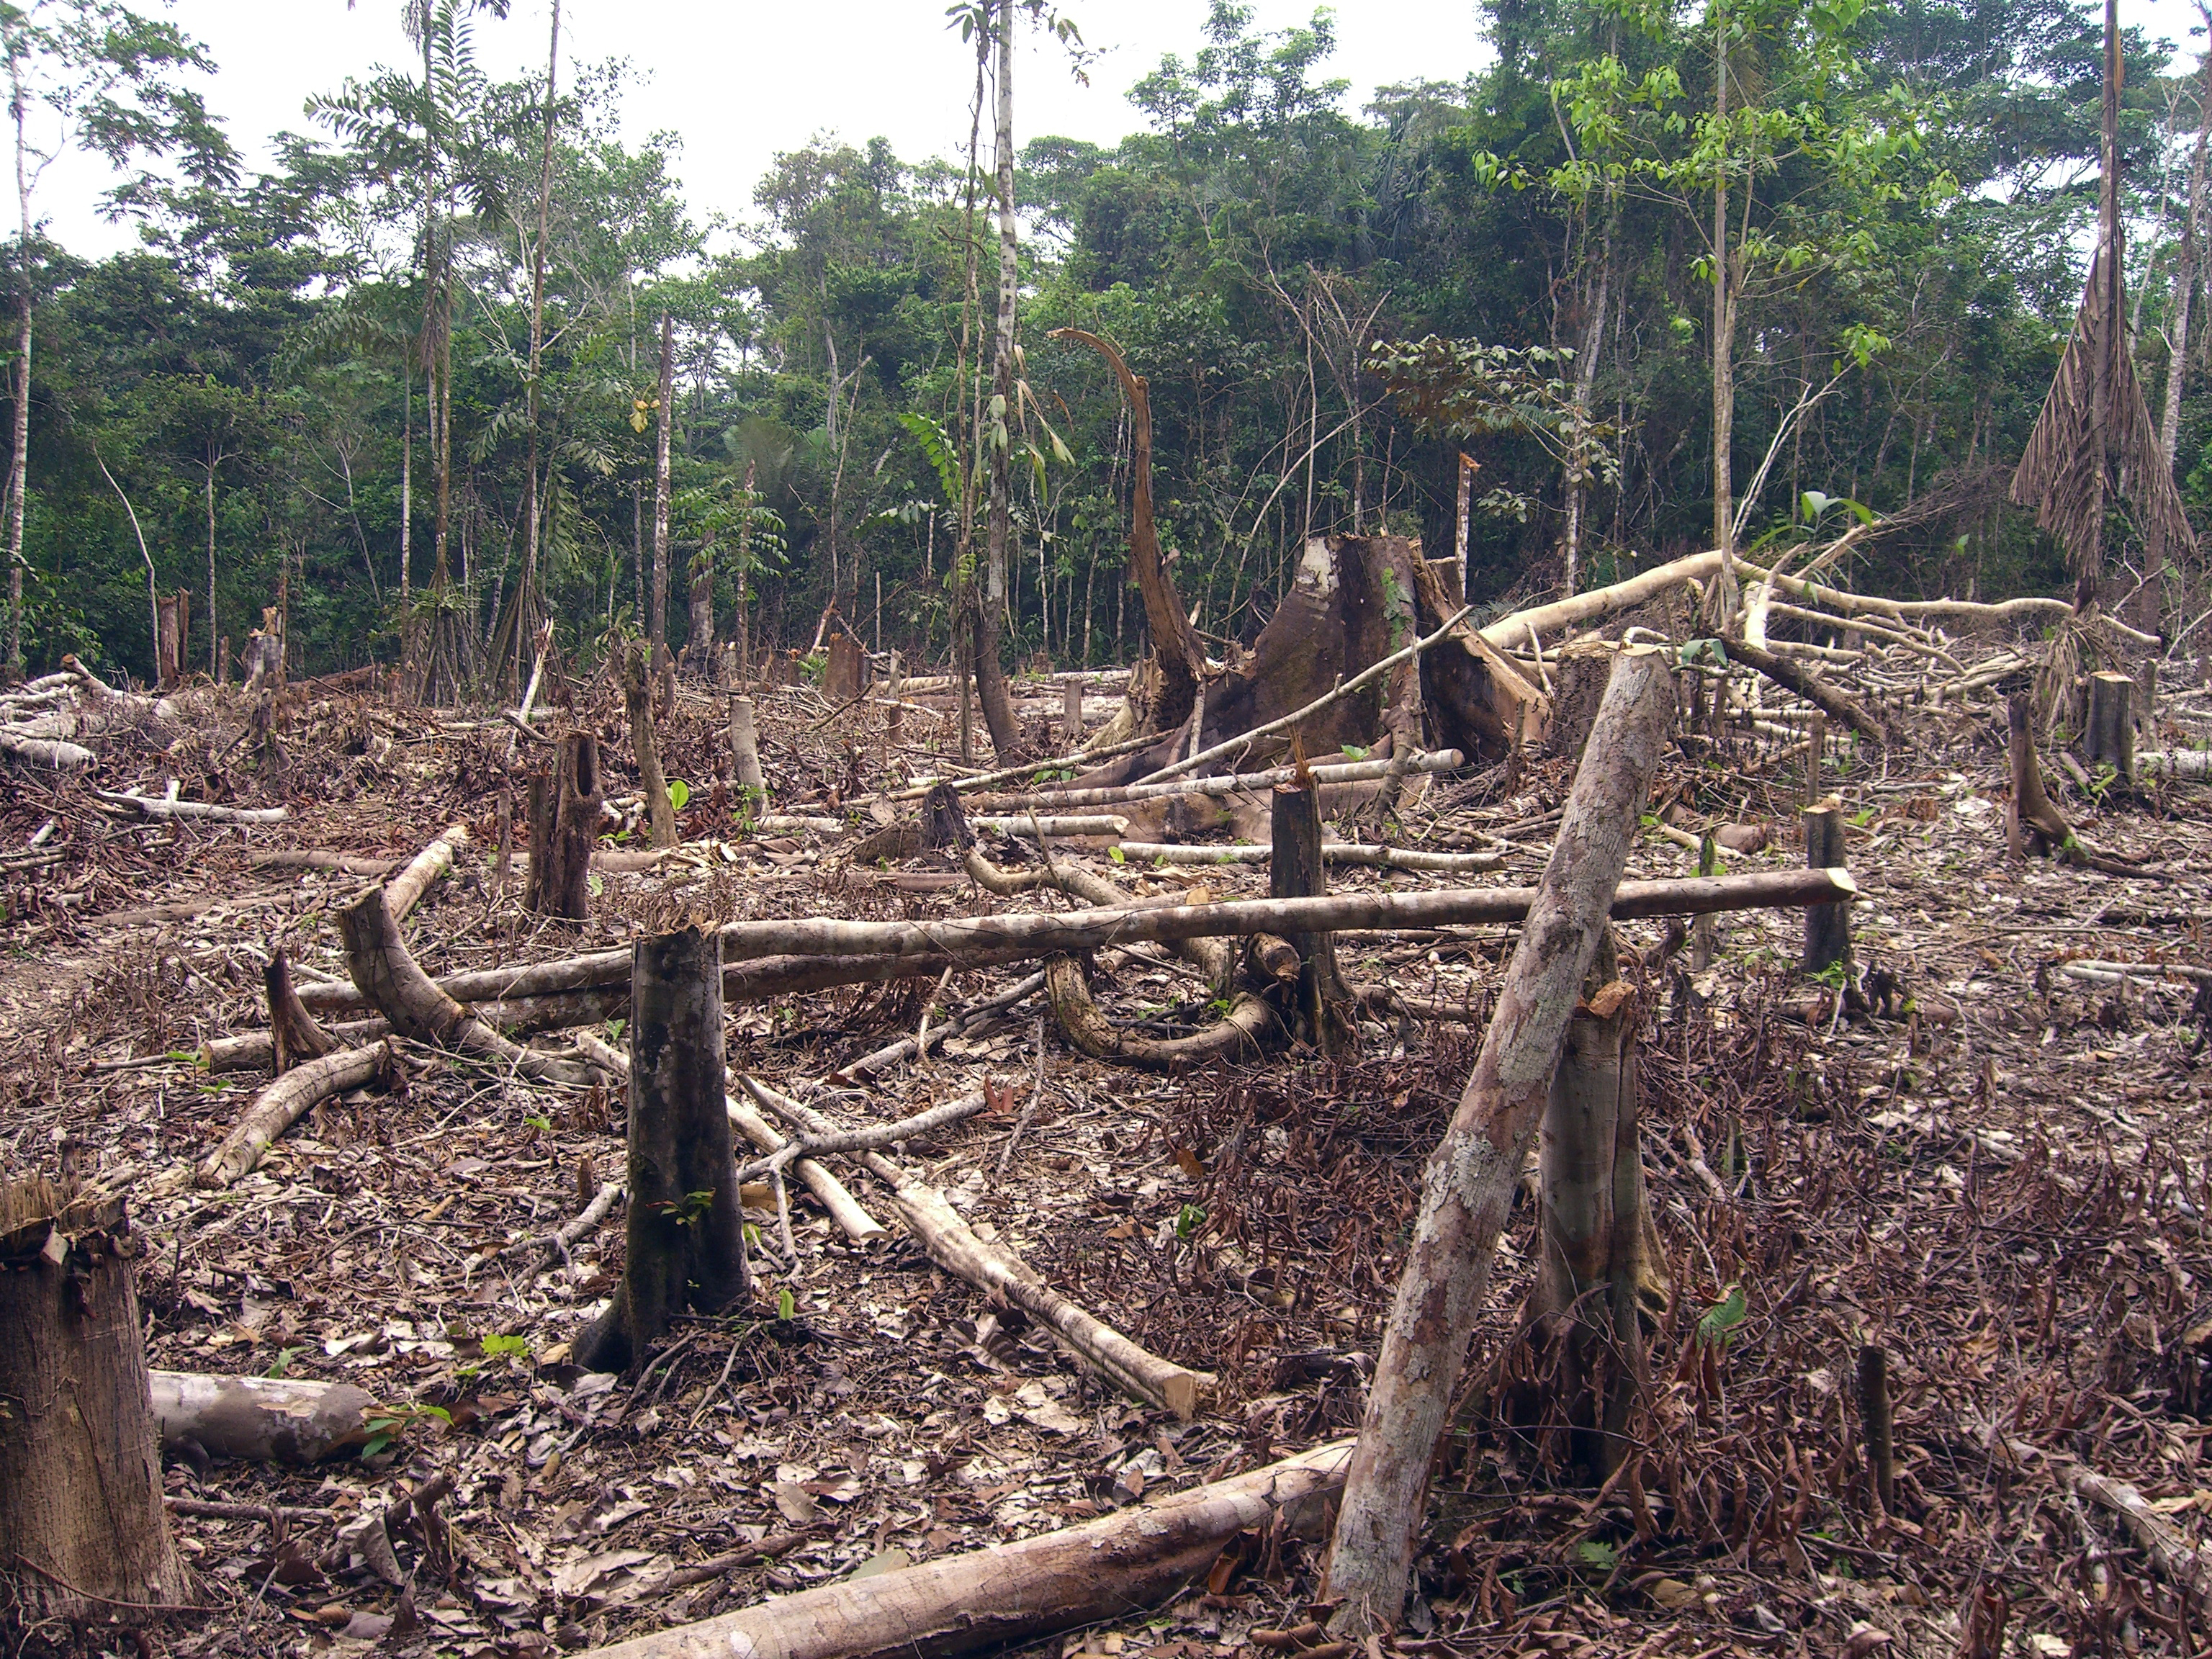 South American Leaders Sign Environmental Pact to Protect Amazon - Latin America News Dispatch